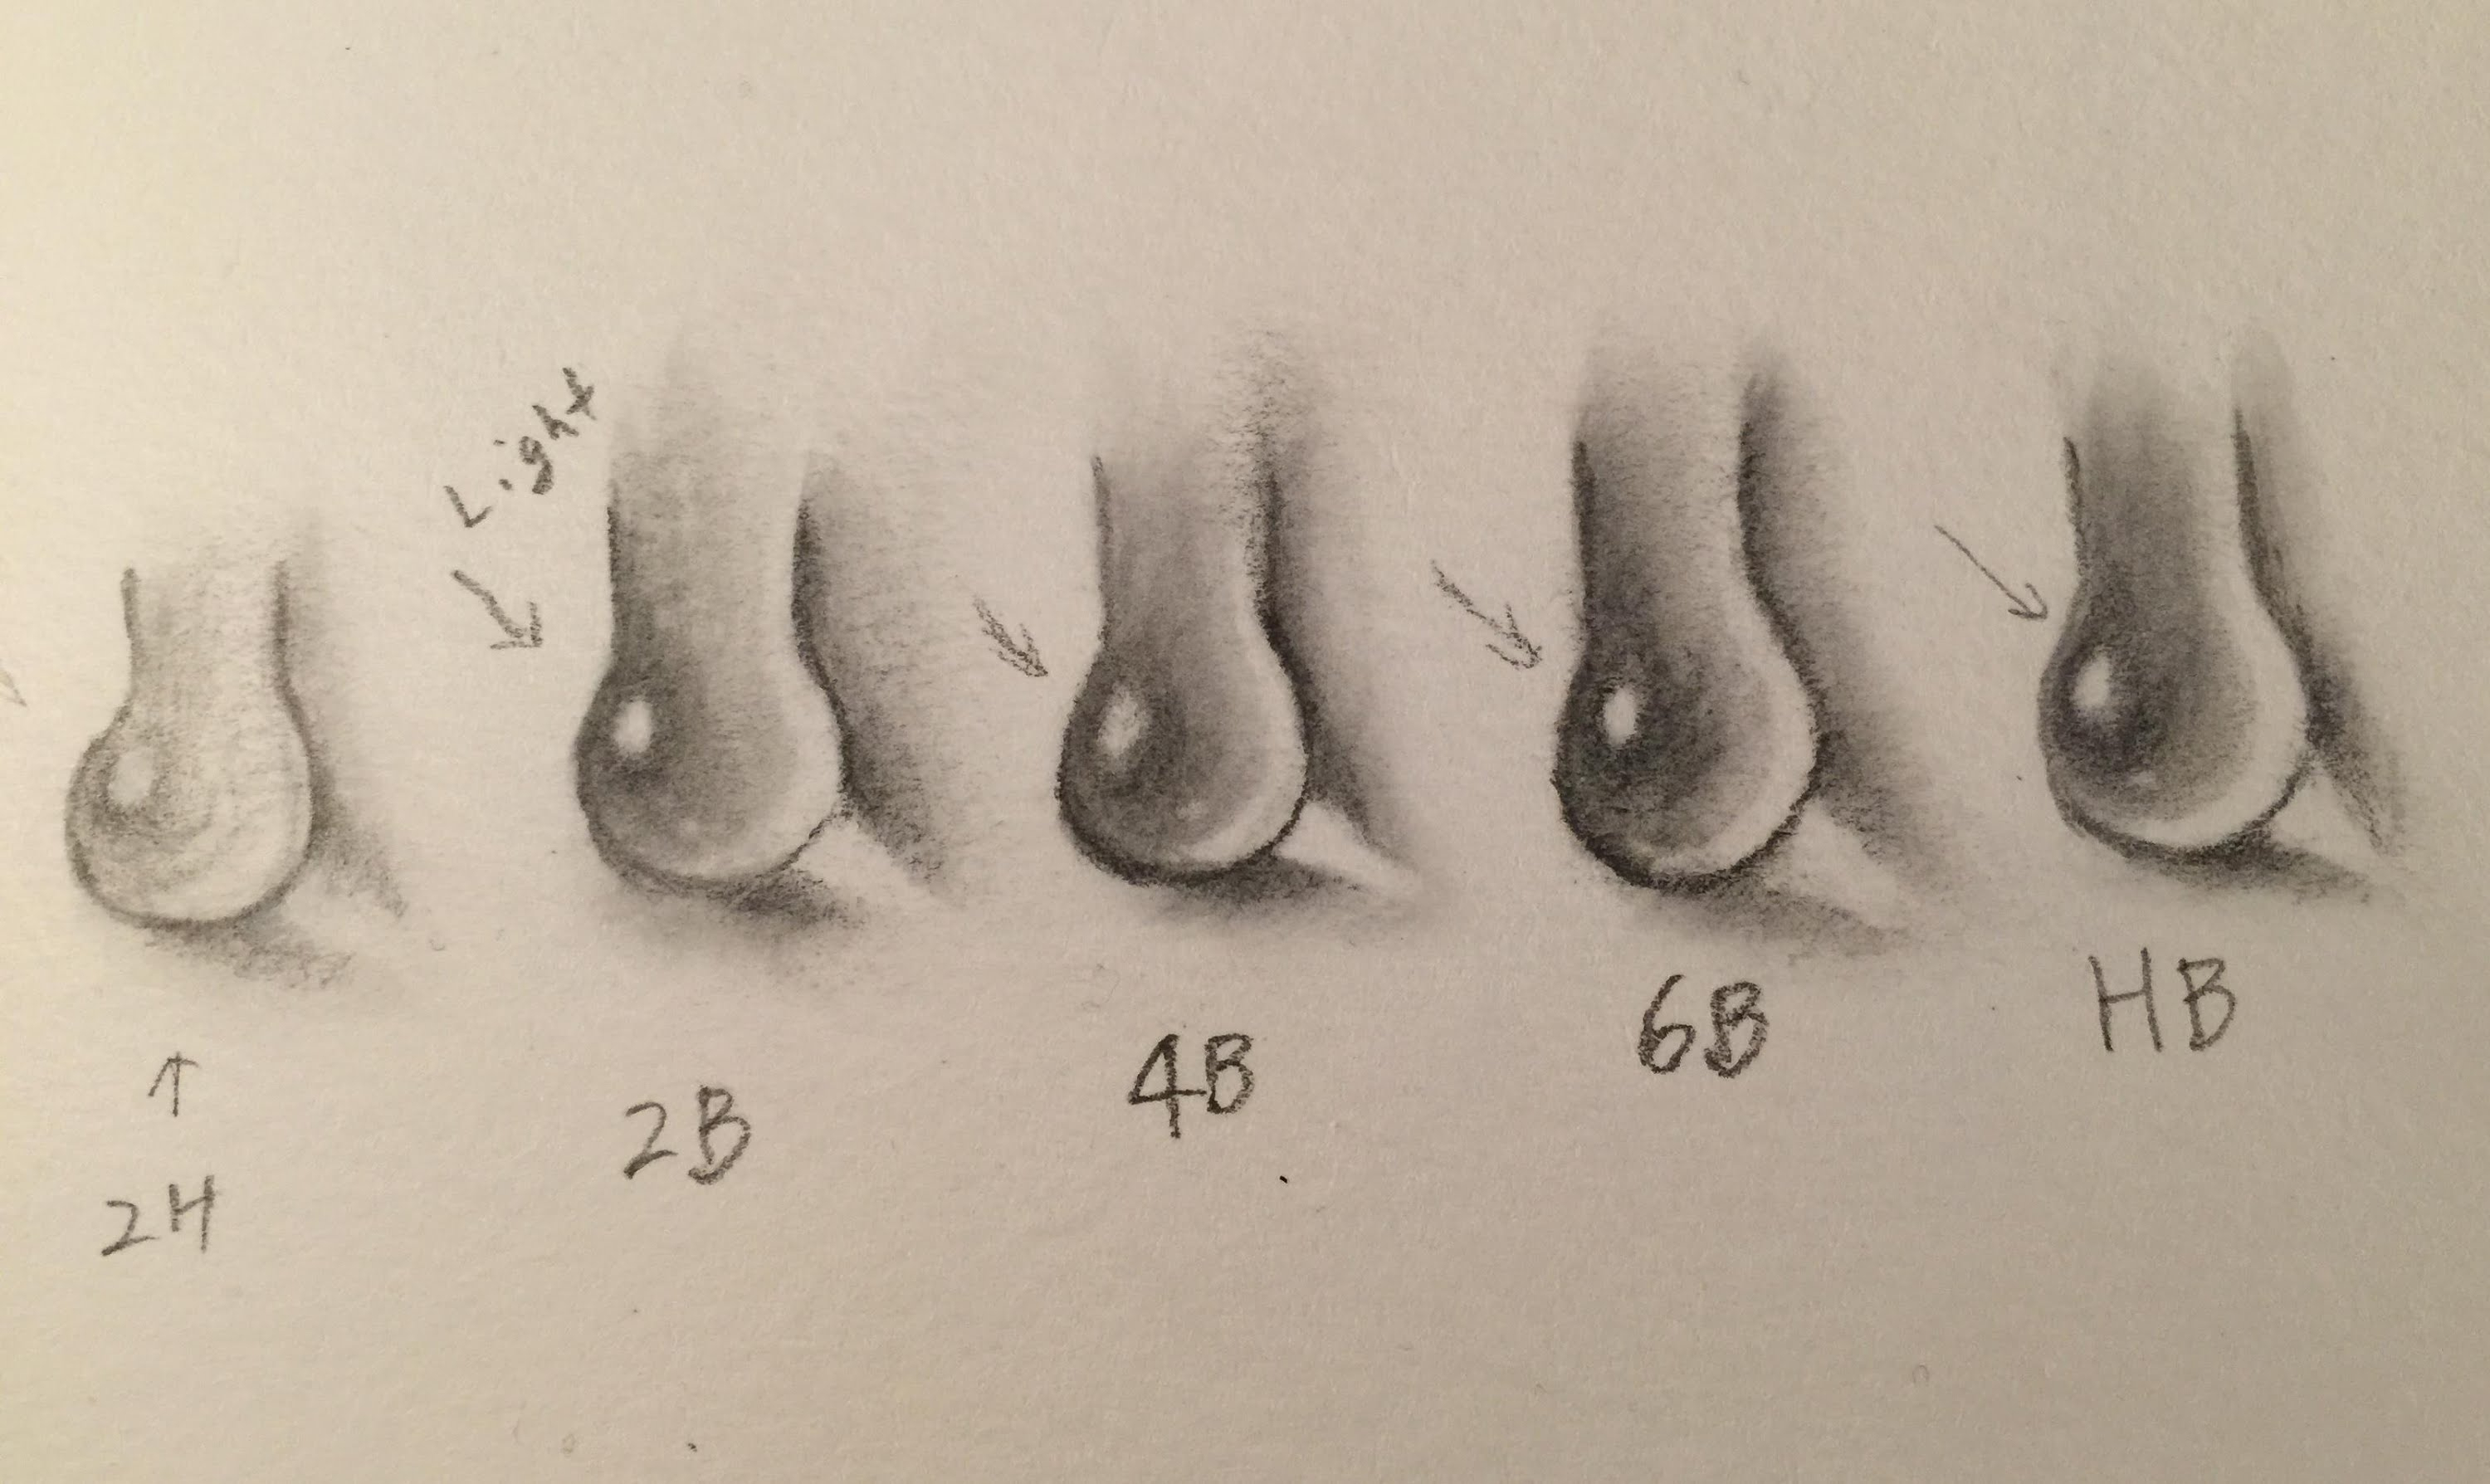 3000x1788 Drawing Pencils Types Hd How To Draw Water Drops And Pencil Lead